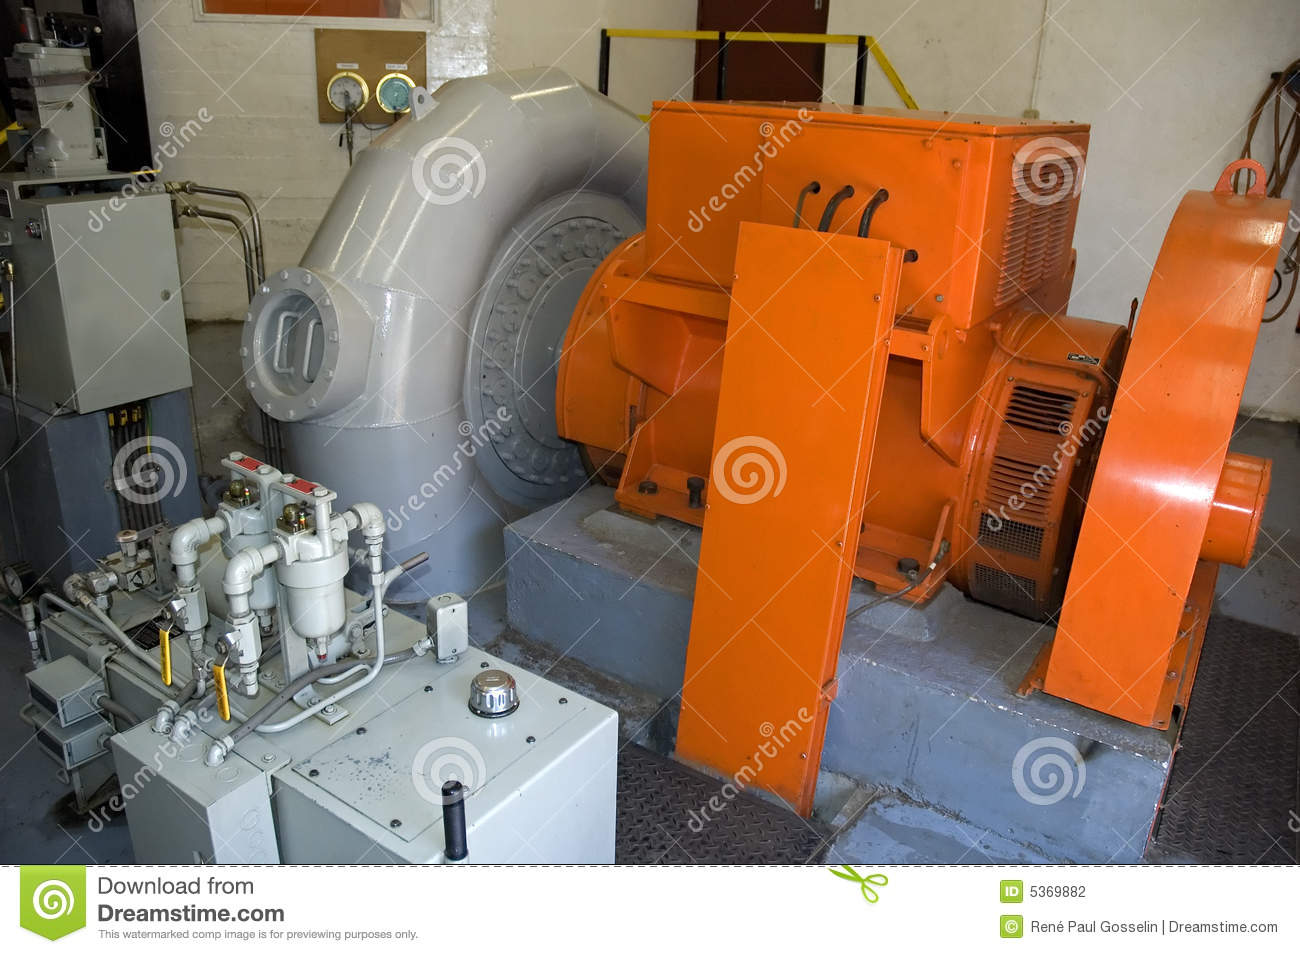 Stock Photography Water Powered Generator Image5369882 on electric generator map